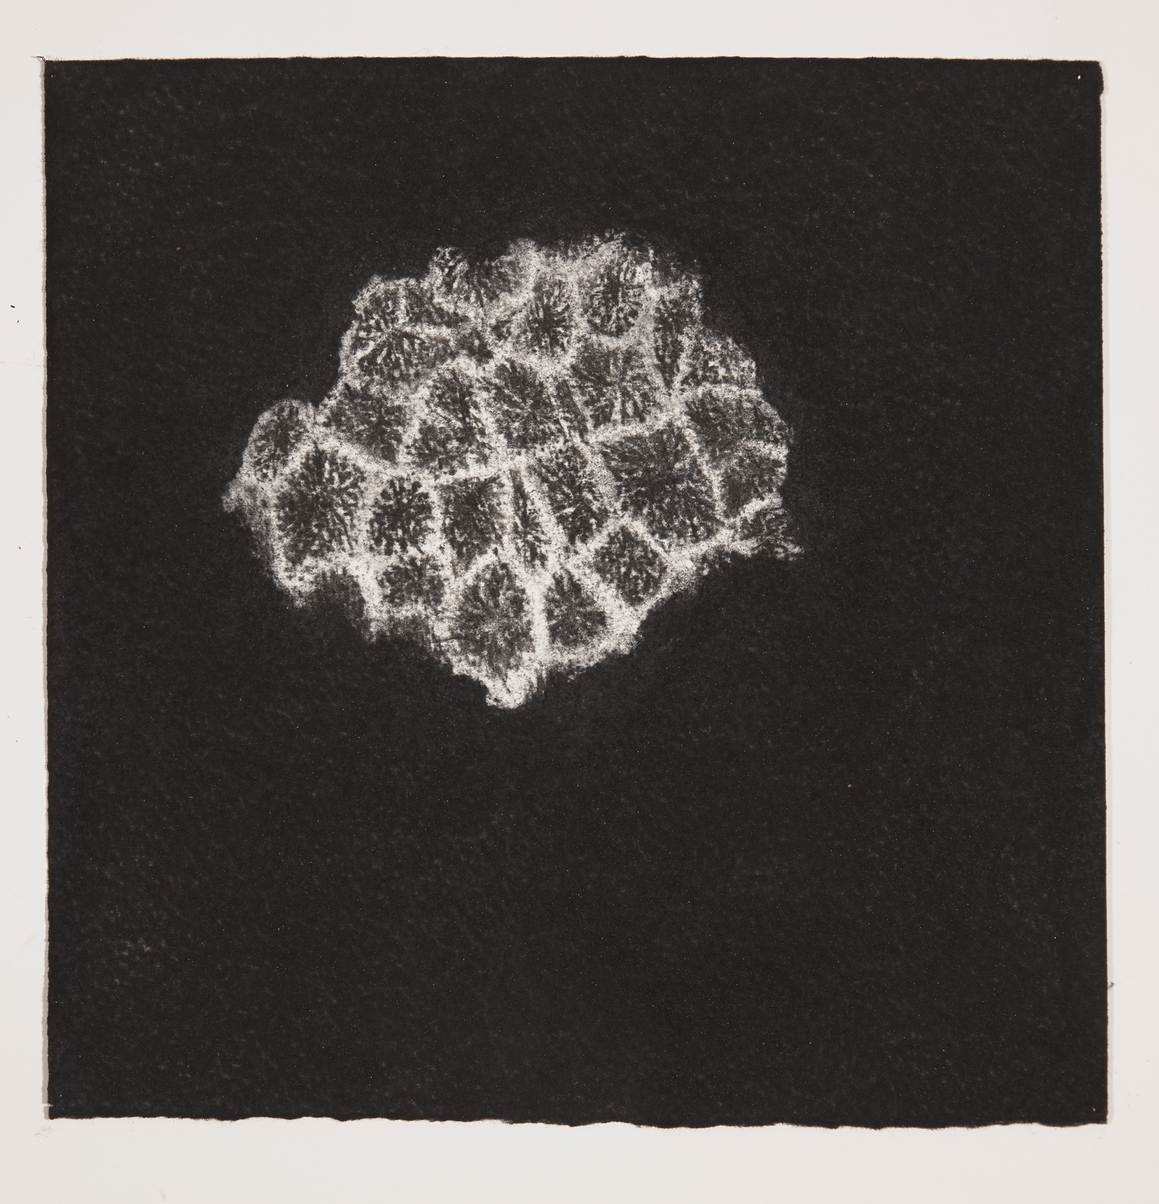 Coral, 2014, charcoal on paper, 19x19cm